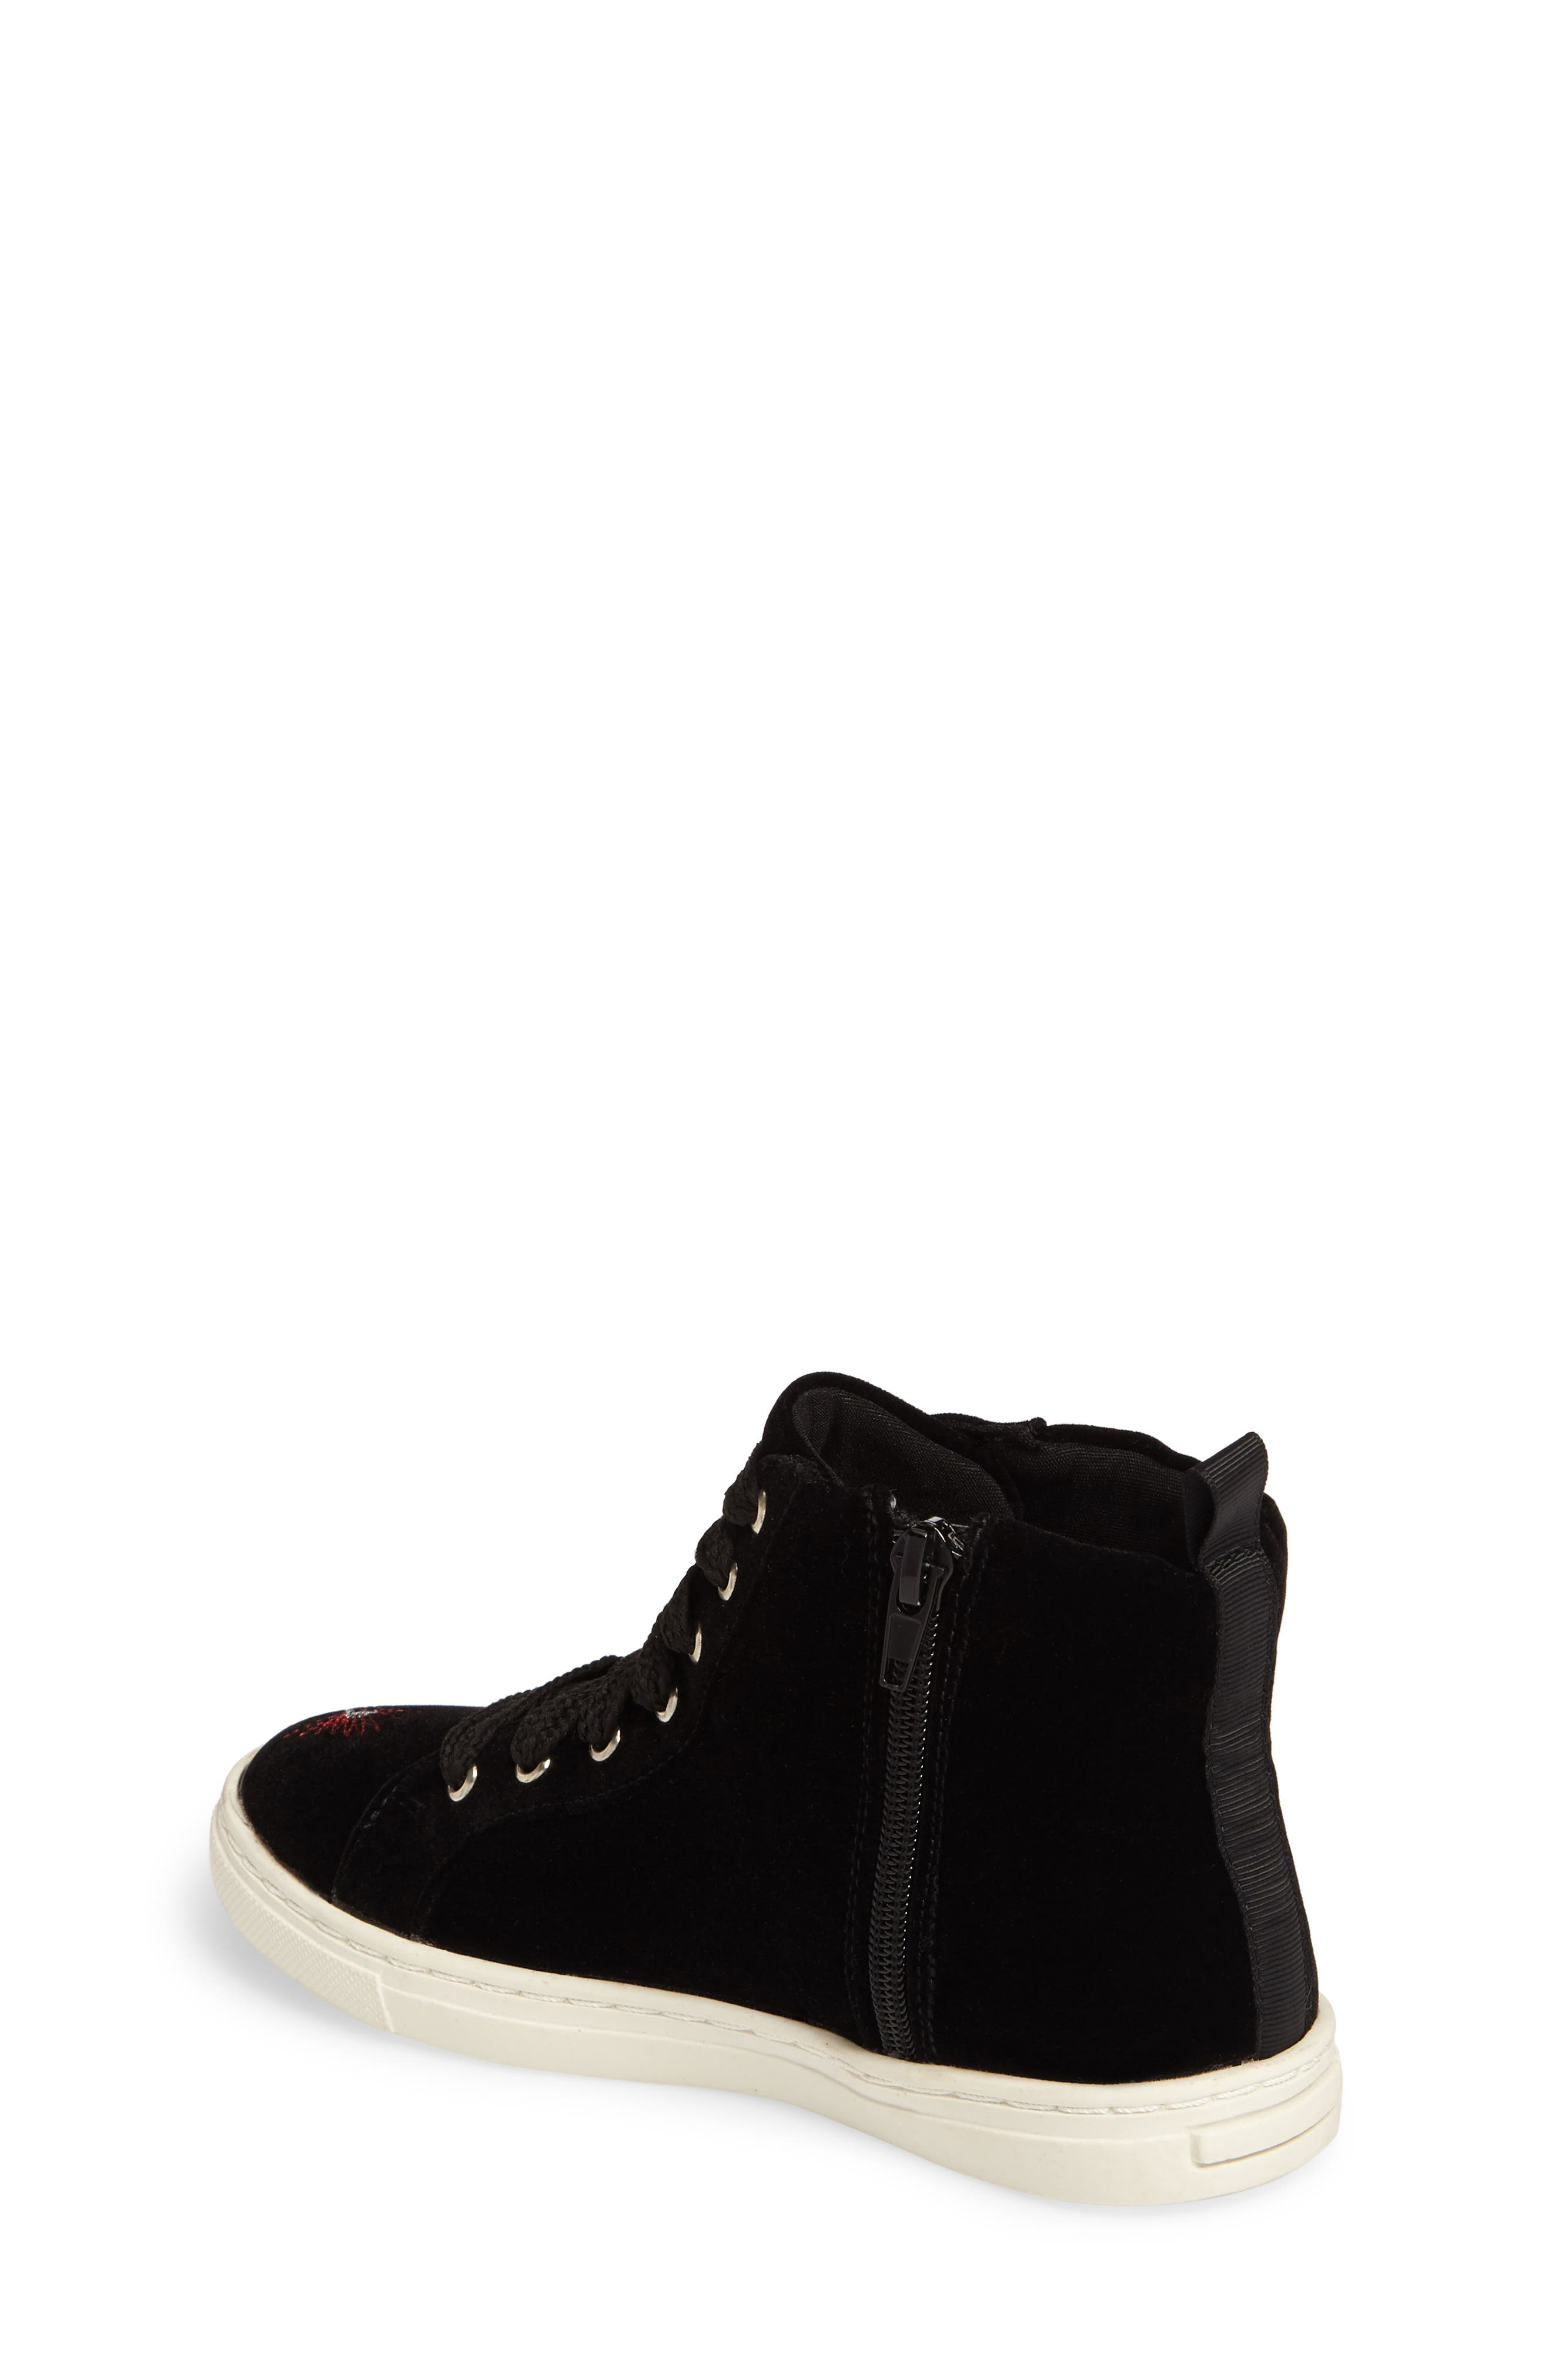 Zowen Embroidered High Top Sneaker,                             Alternate thumbnail 2, color,                             003